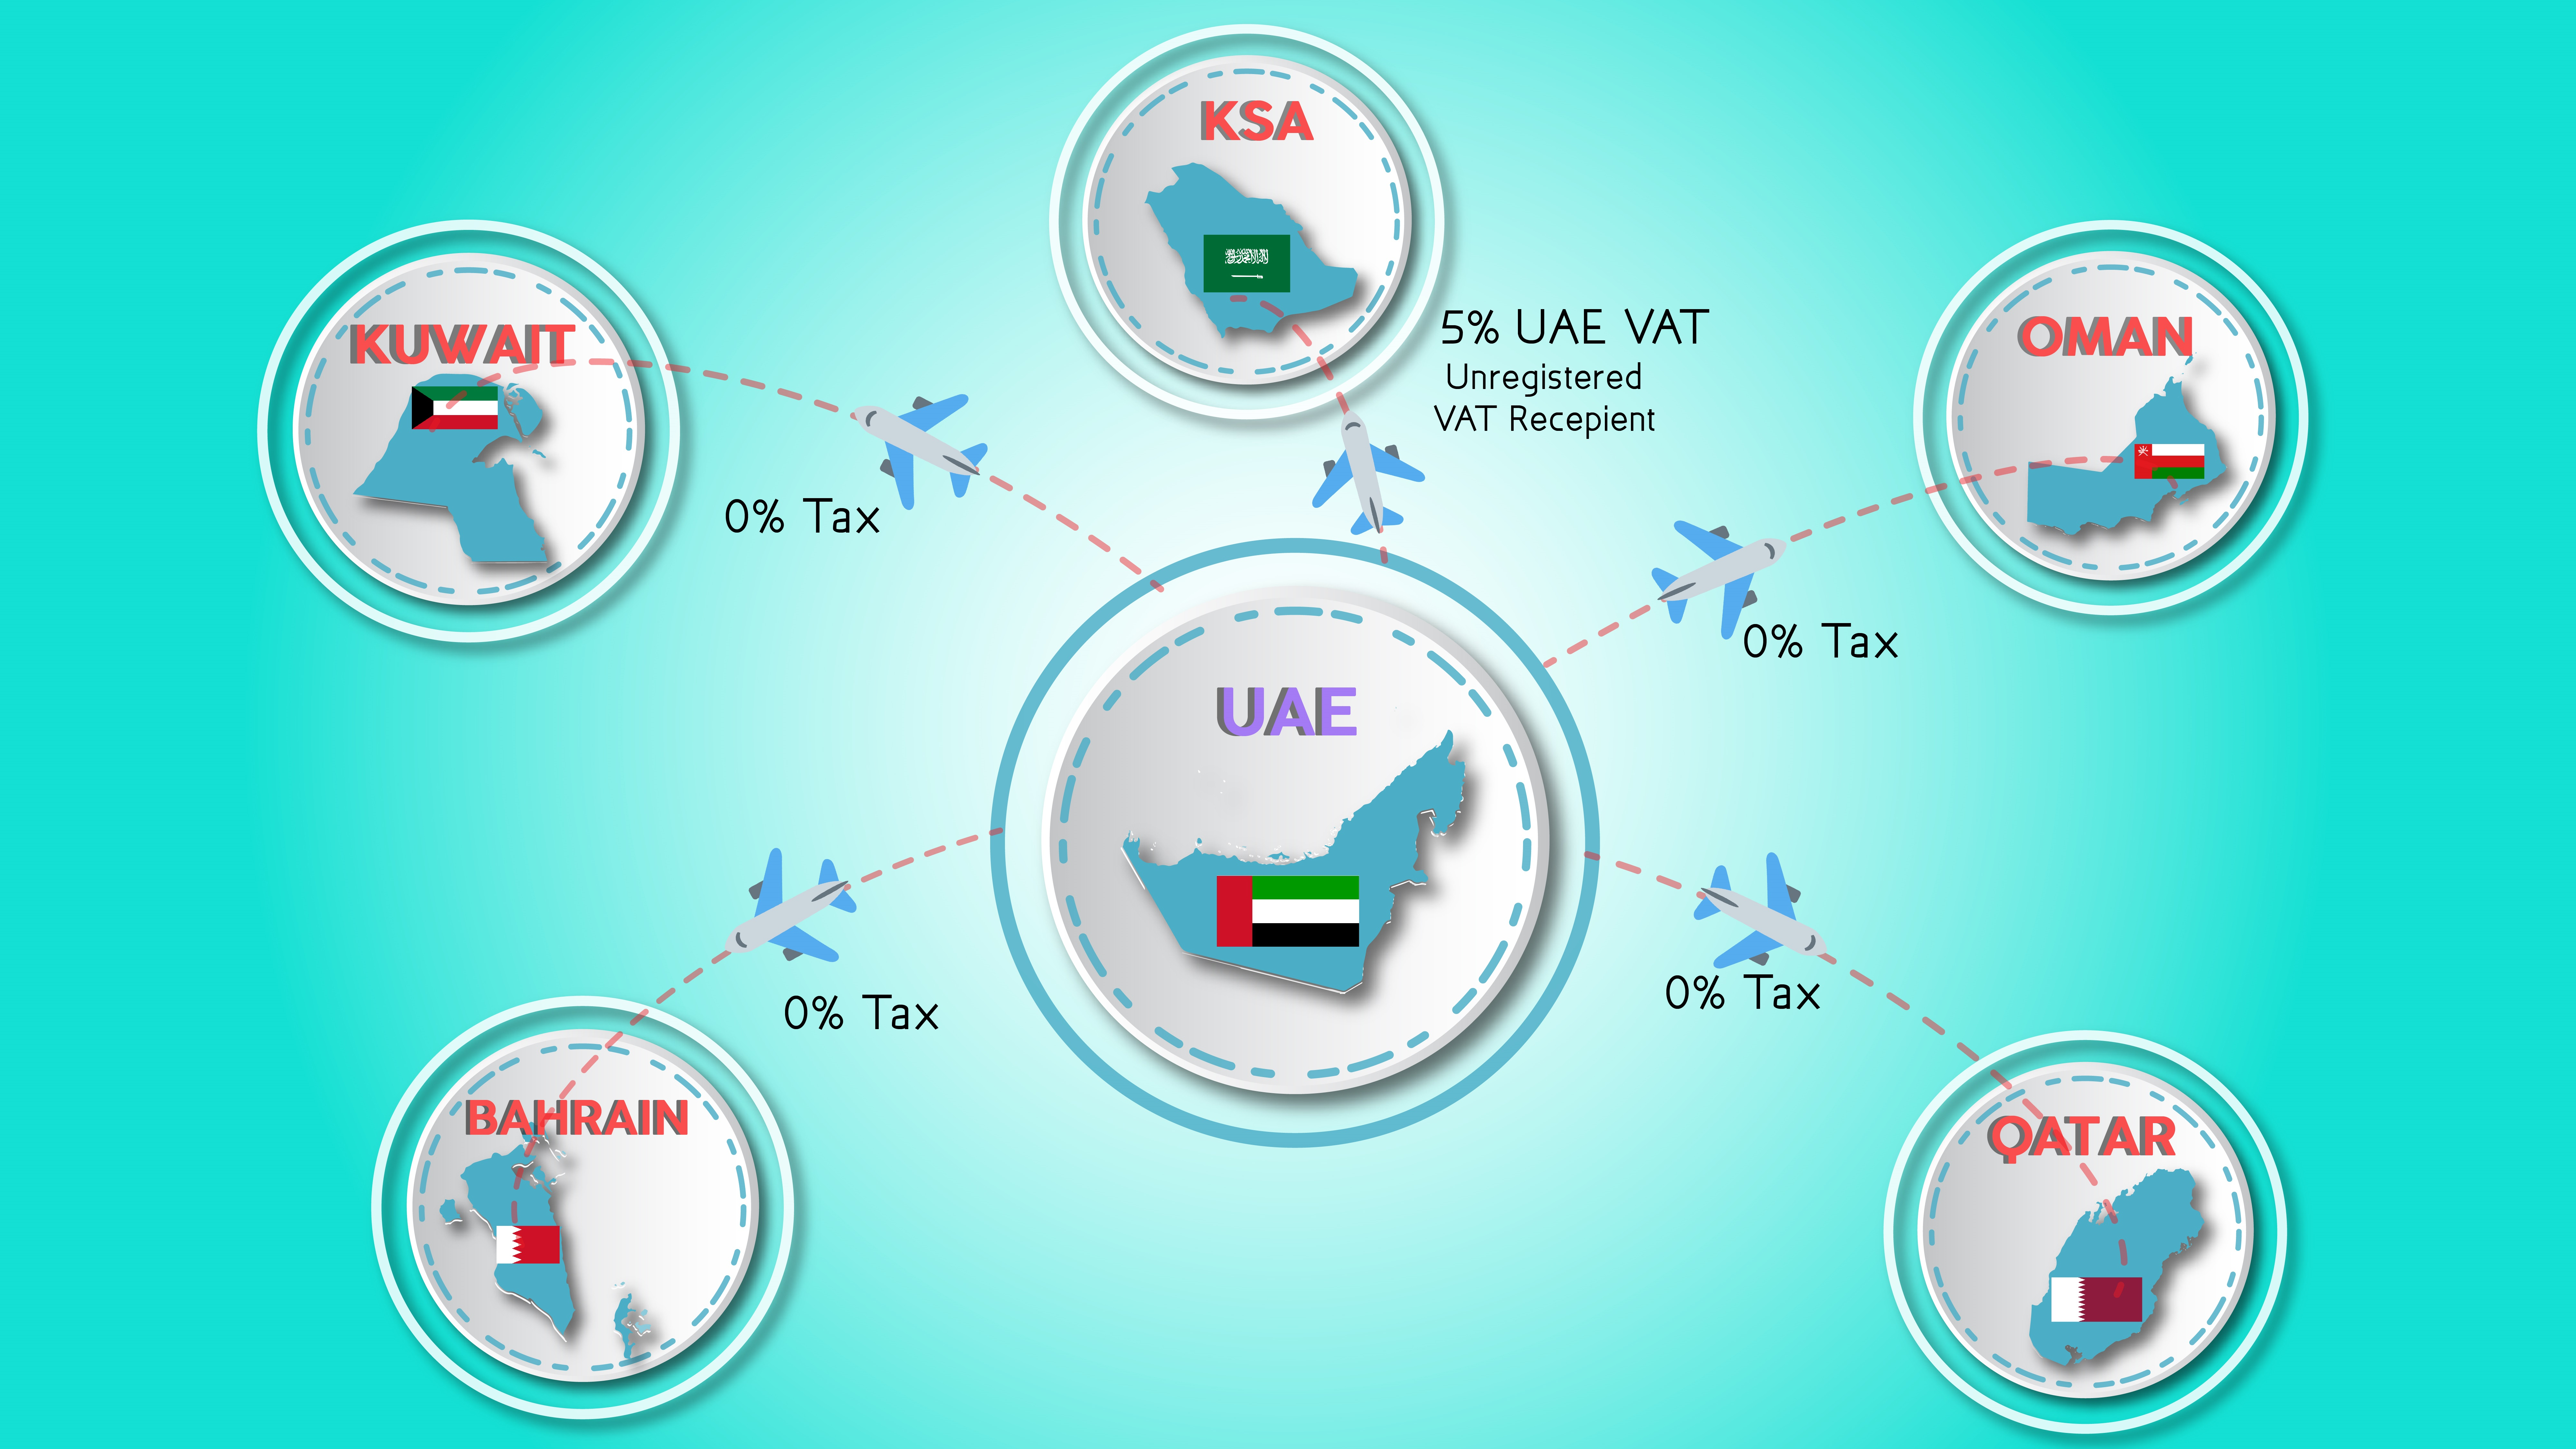 How To Raise Gcc Invoices In Uae With A Free Excel Dowload